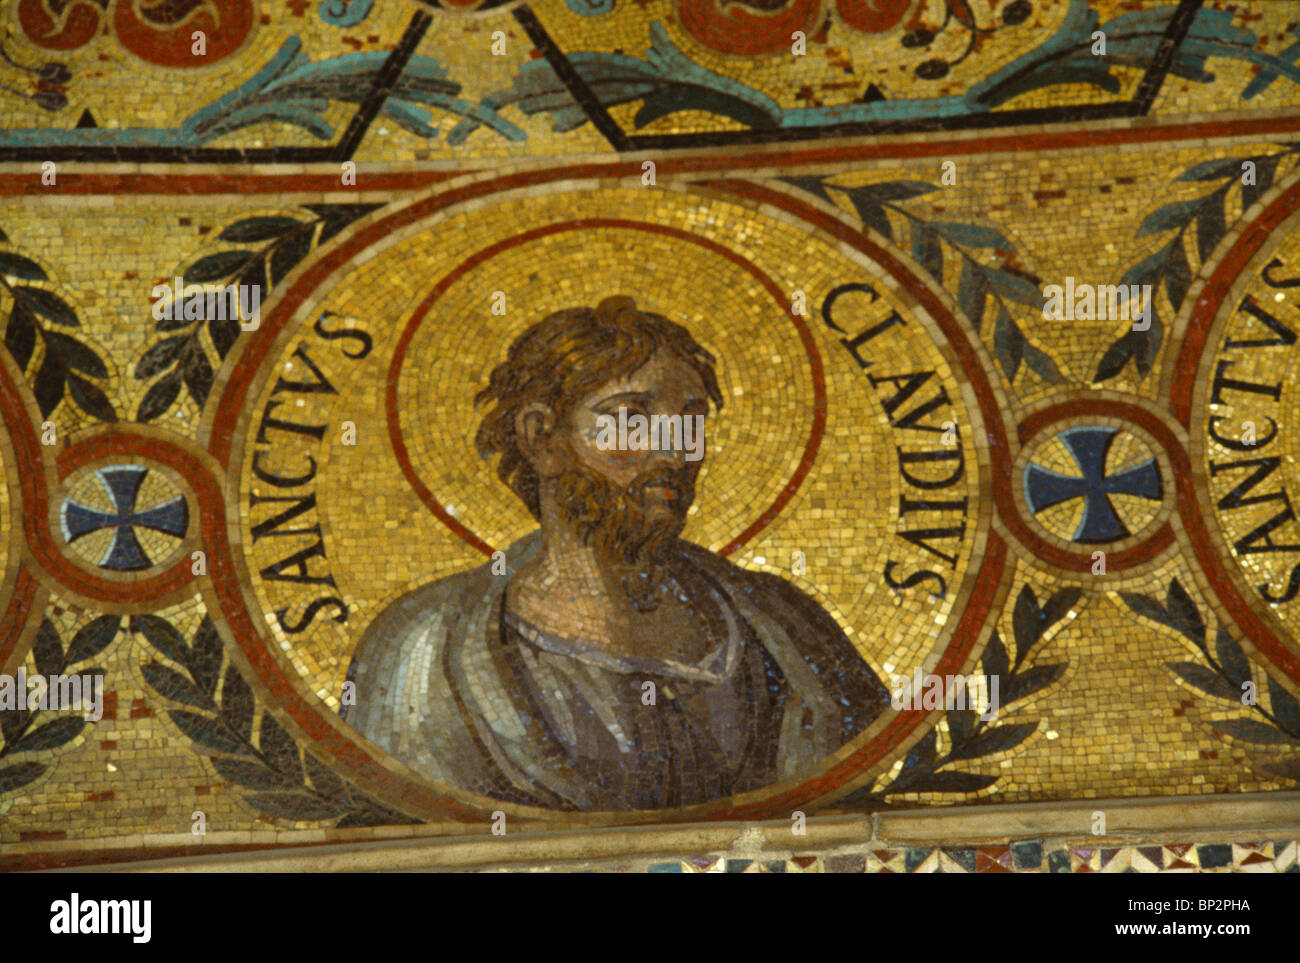 Palermo Sicily Italy The Palatine Chapel In The Norman Palace Mosaic Of Saint Claudius - Stock Image